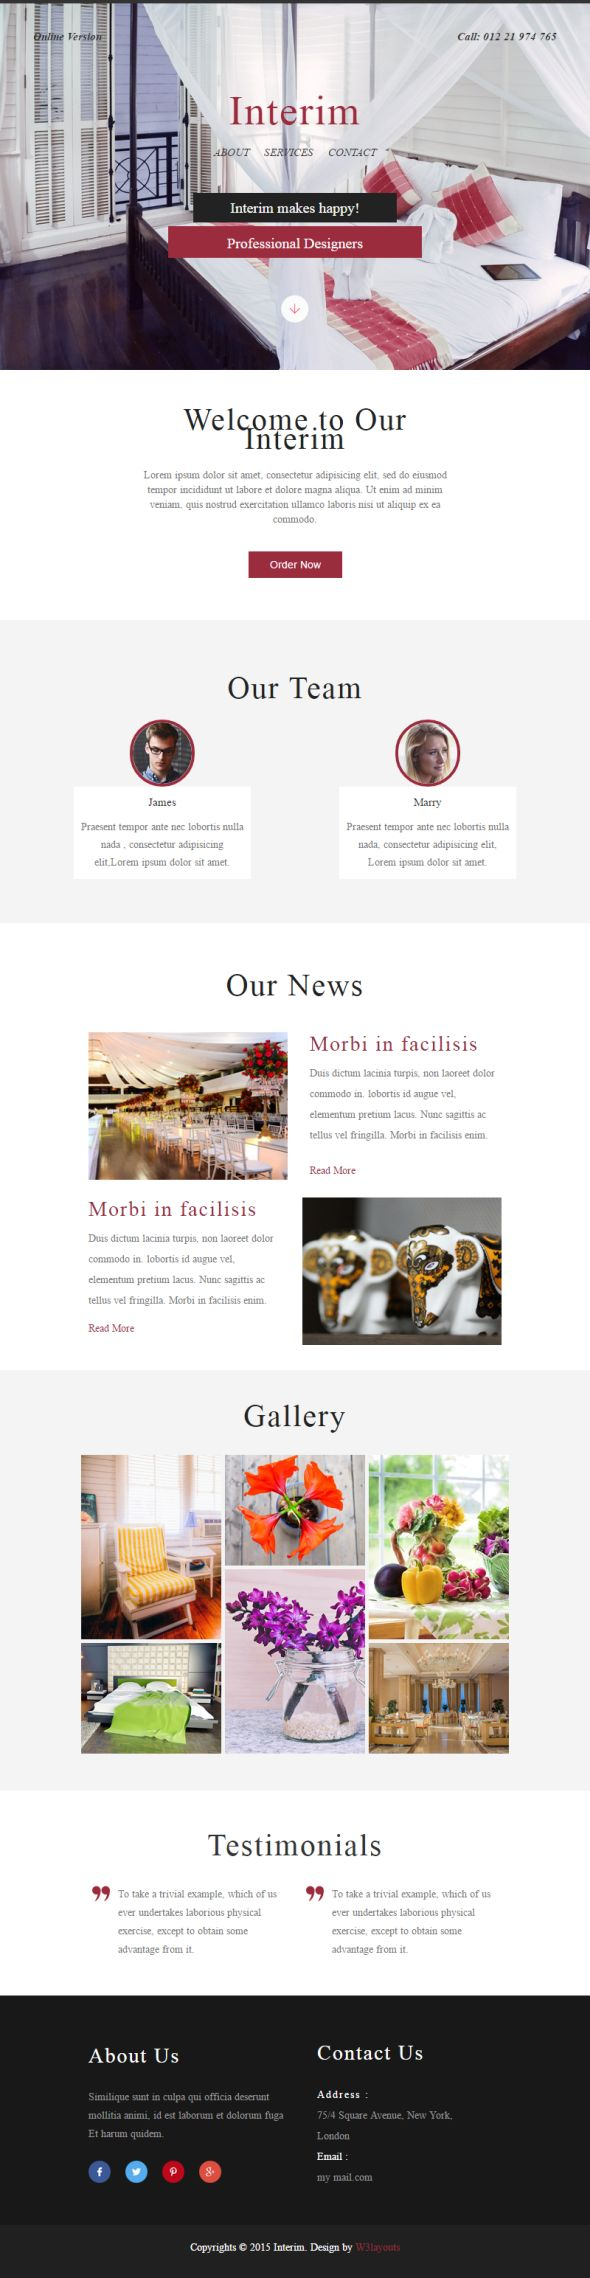 interim-newsletter-template